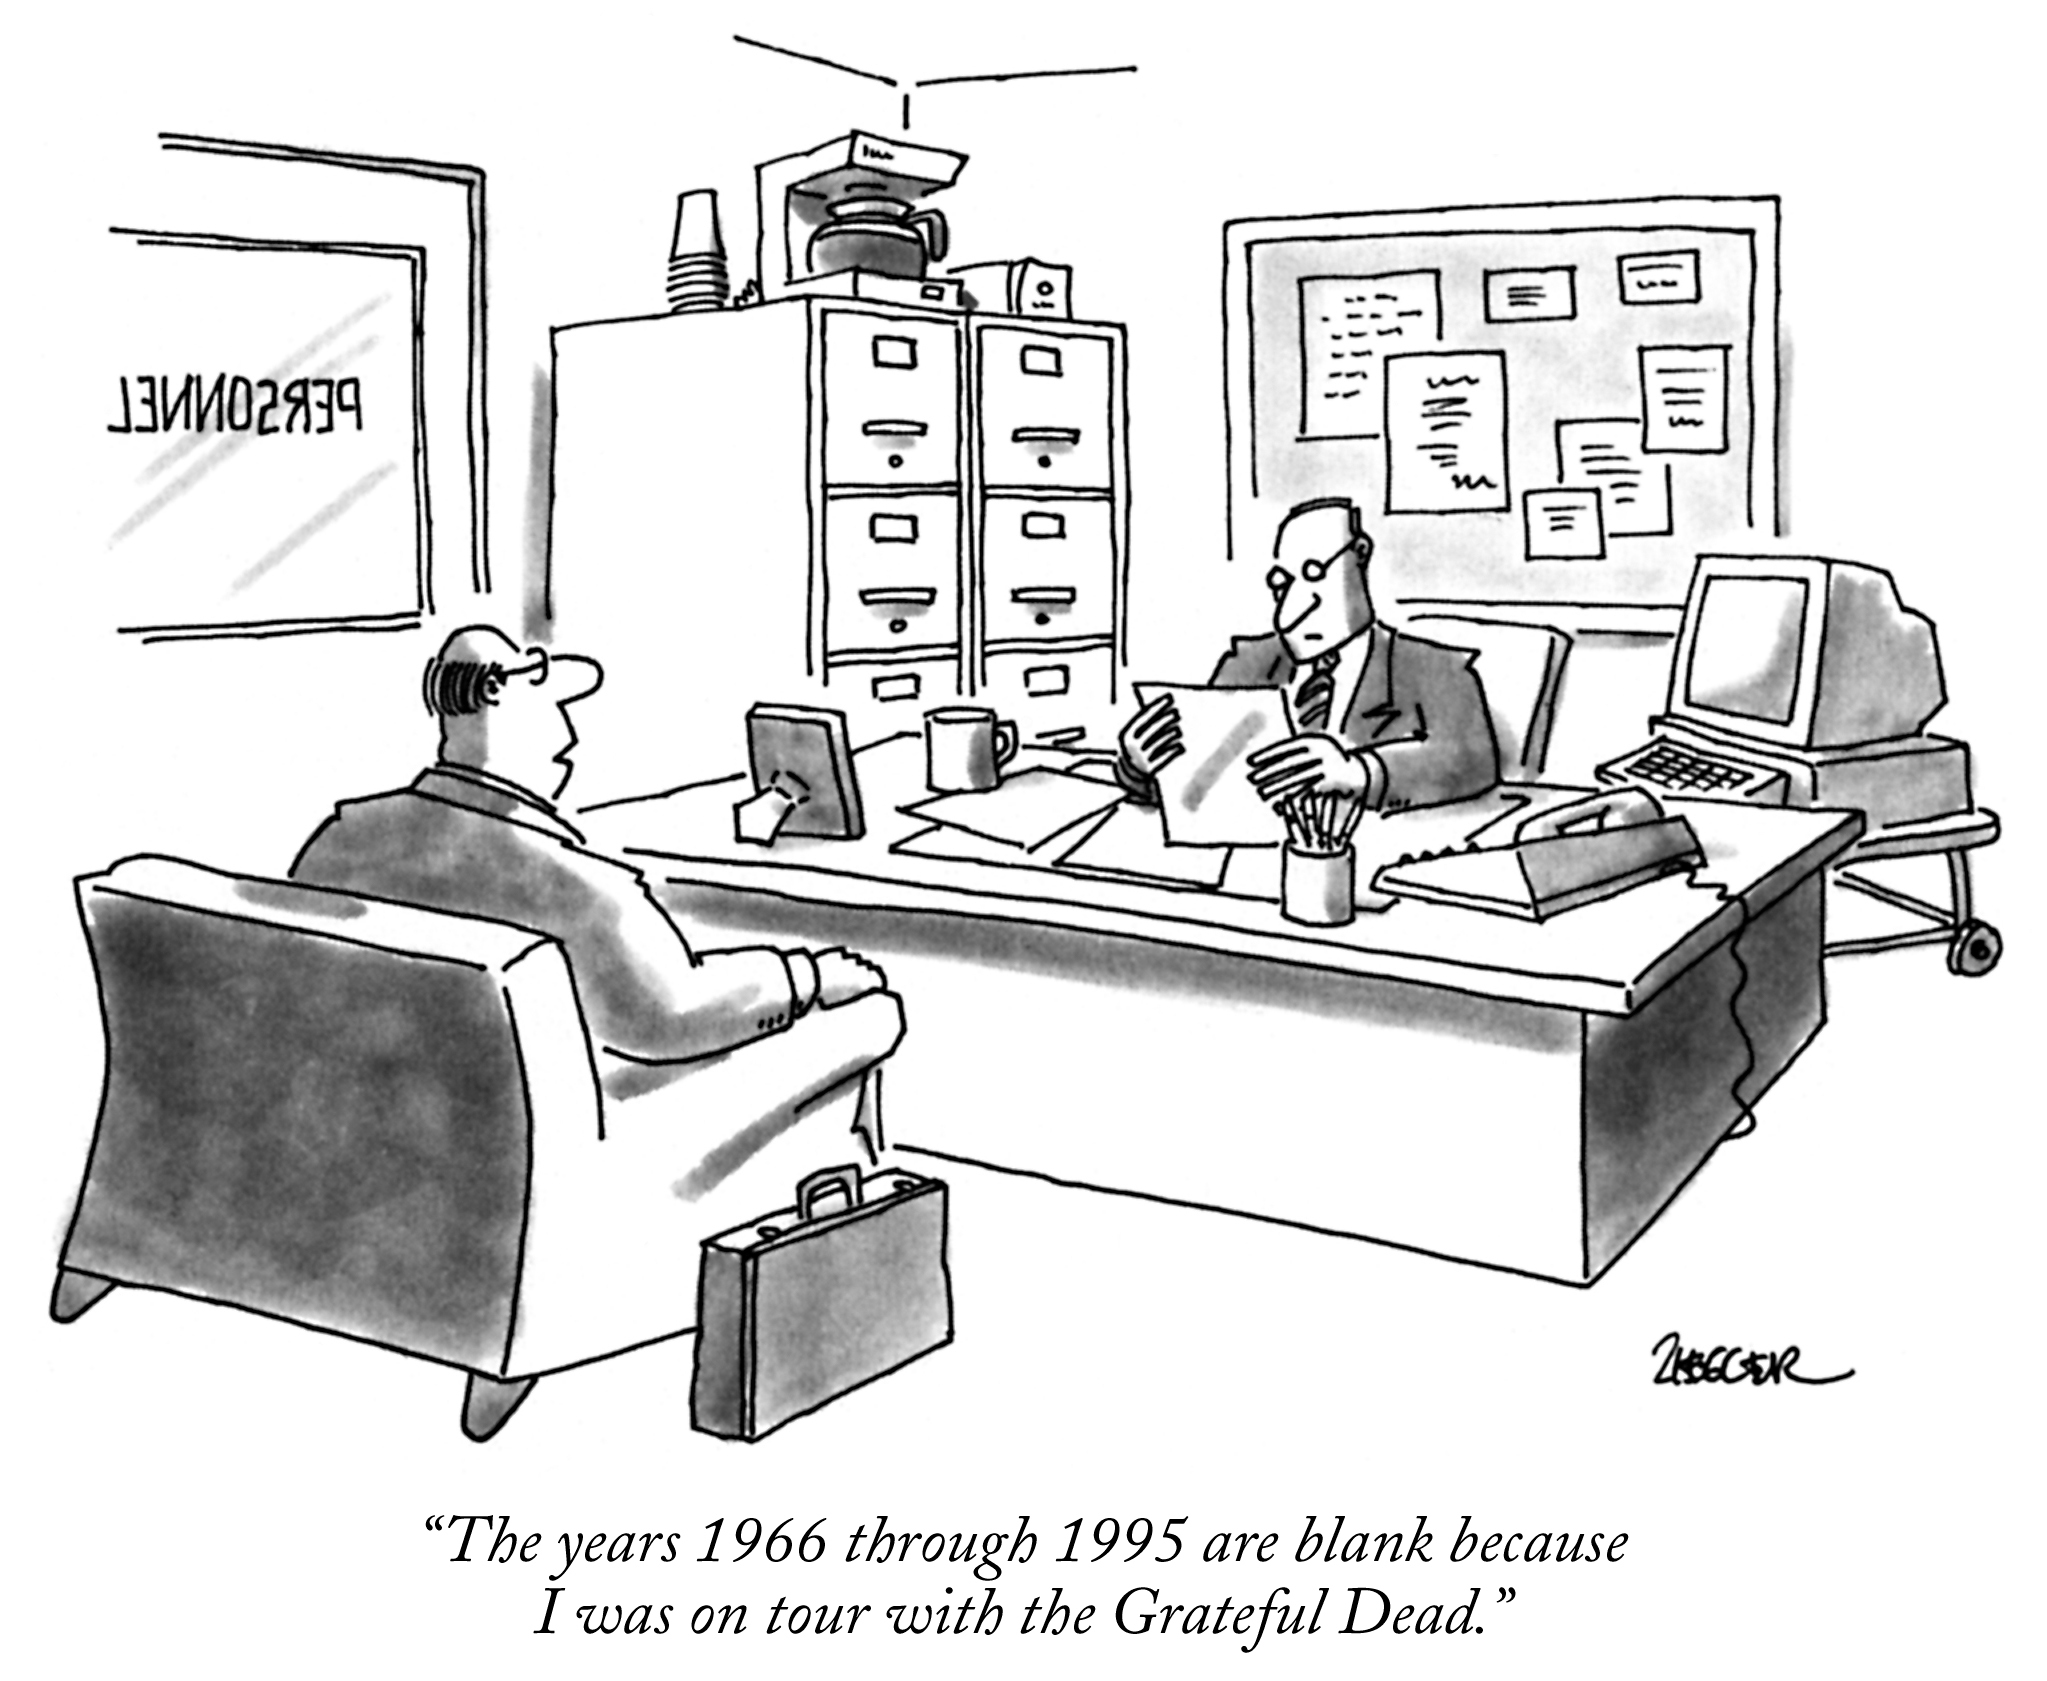 Employment gap: The years 1966 through 1995 are blank because I was on tour with the Grateful Dead.? (Conde Nast TagID: cncartoons011656) [Photo via Conde Nast]